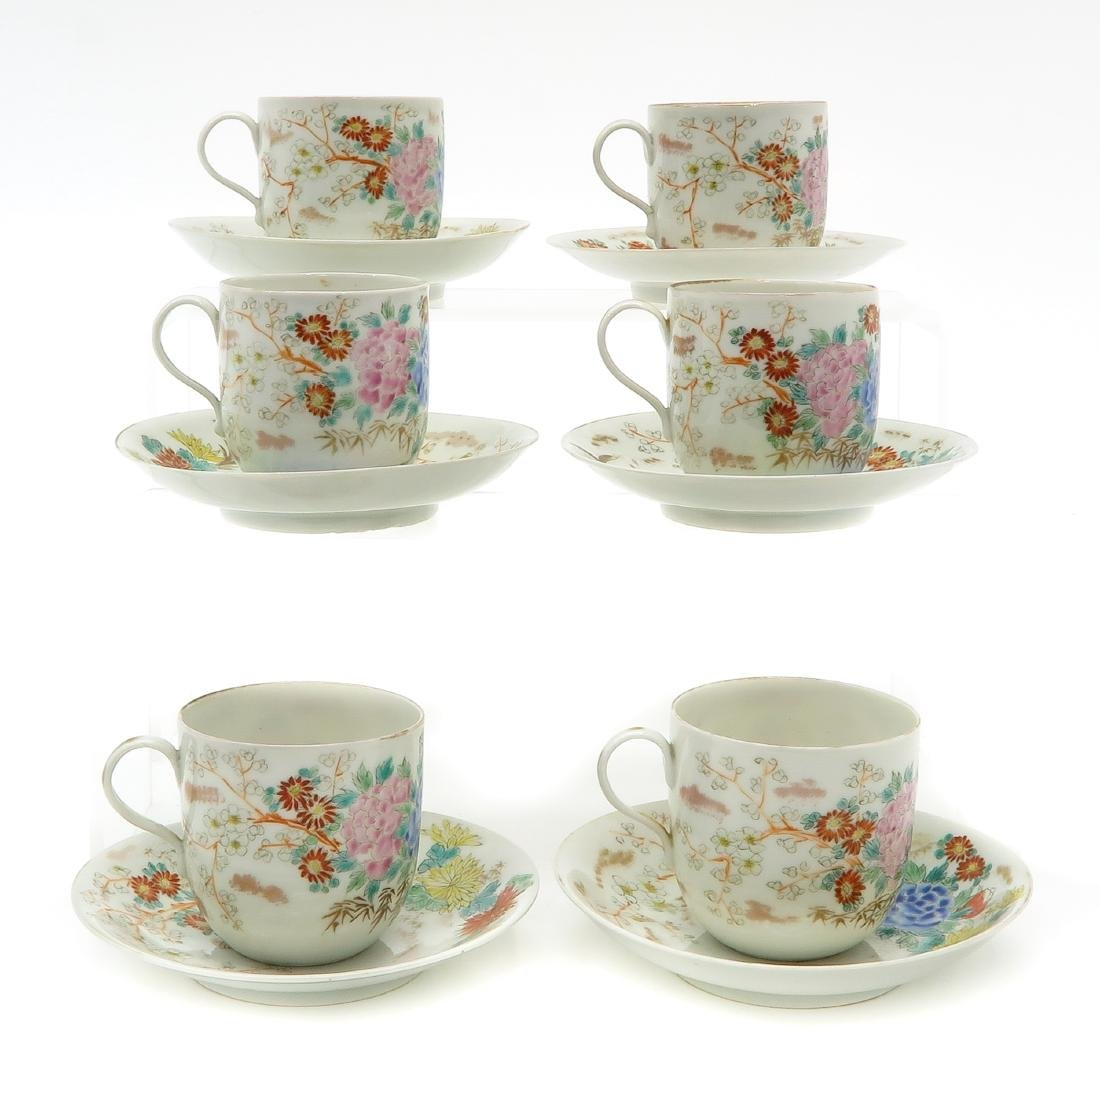 Lot of 6 Cups and Saucers - 2